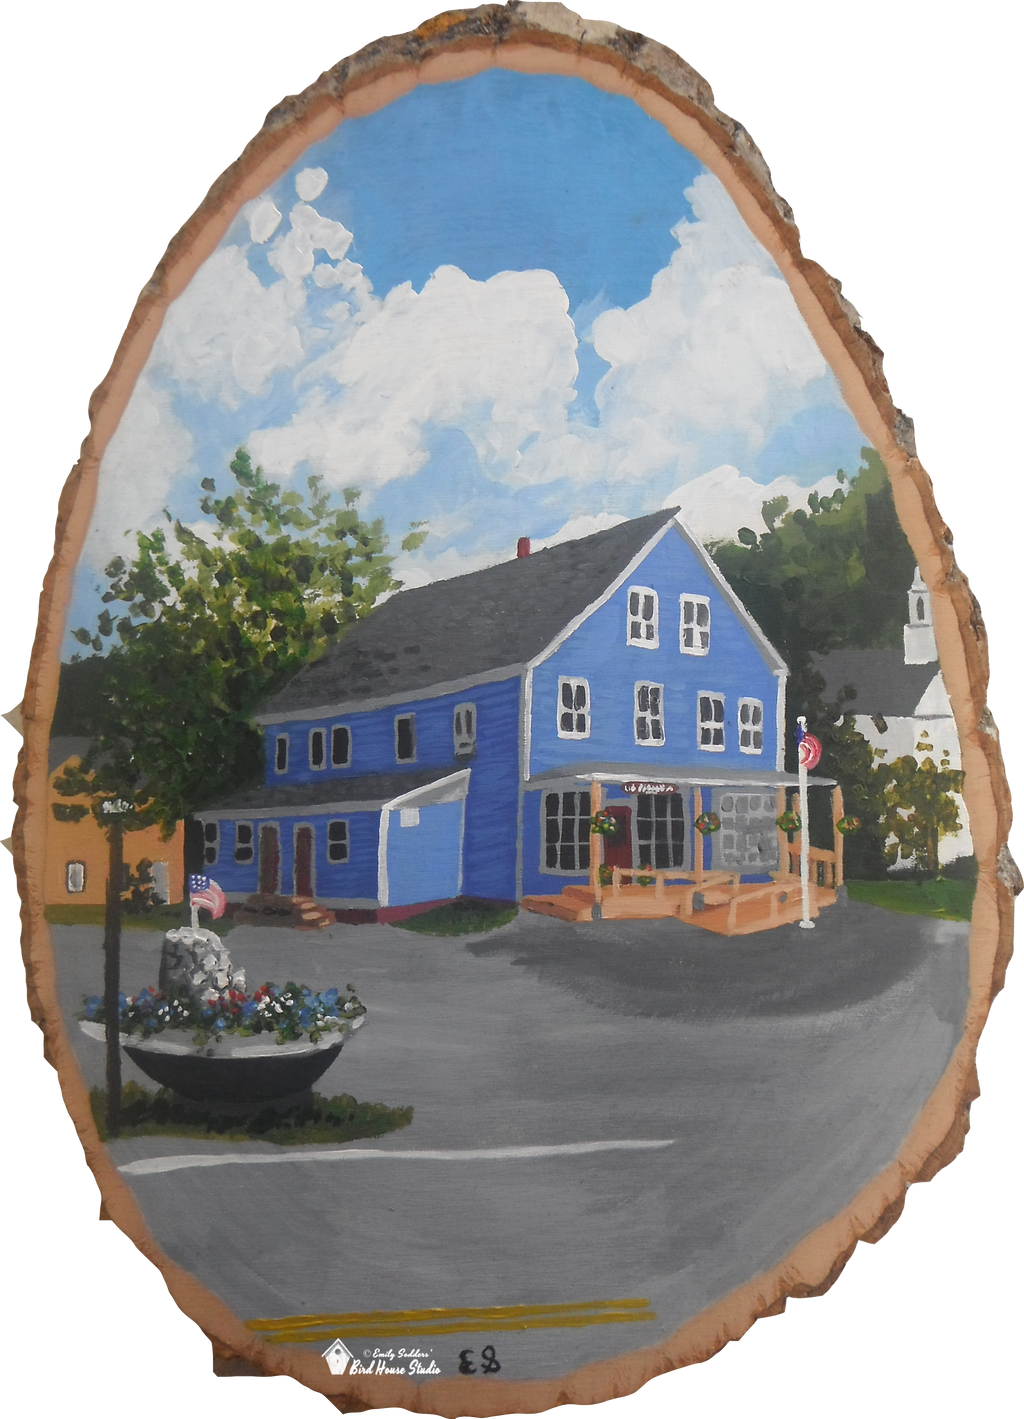 gilsum chatrooms Get directions, maps, and traffic for gilsum, nh check flight prices and hotel availability for your visit.